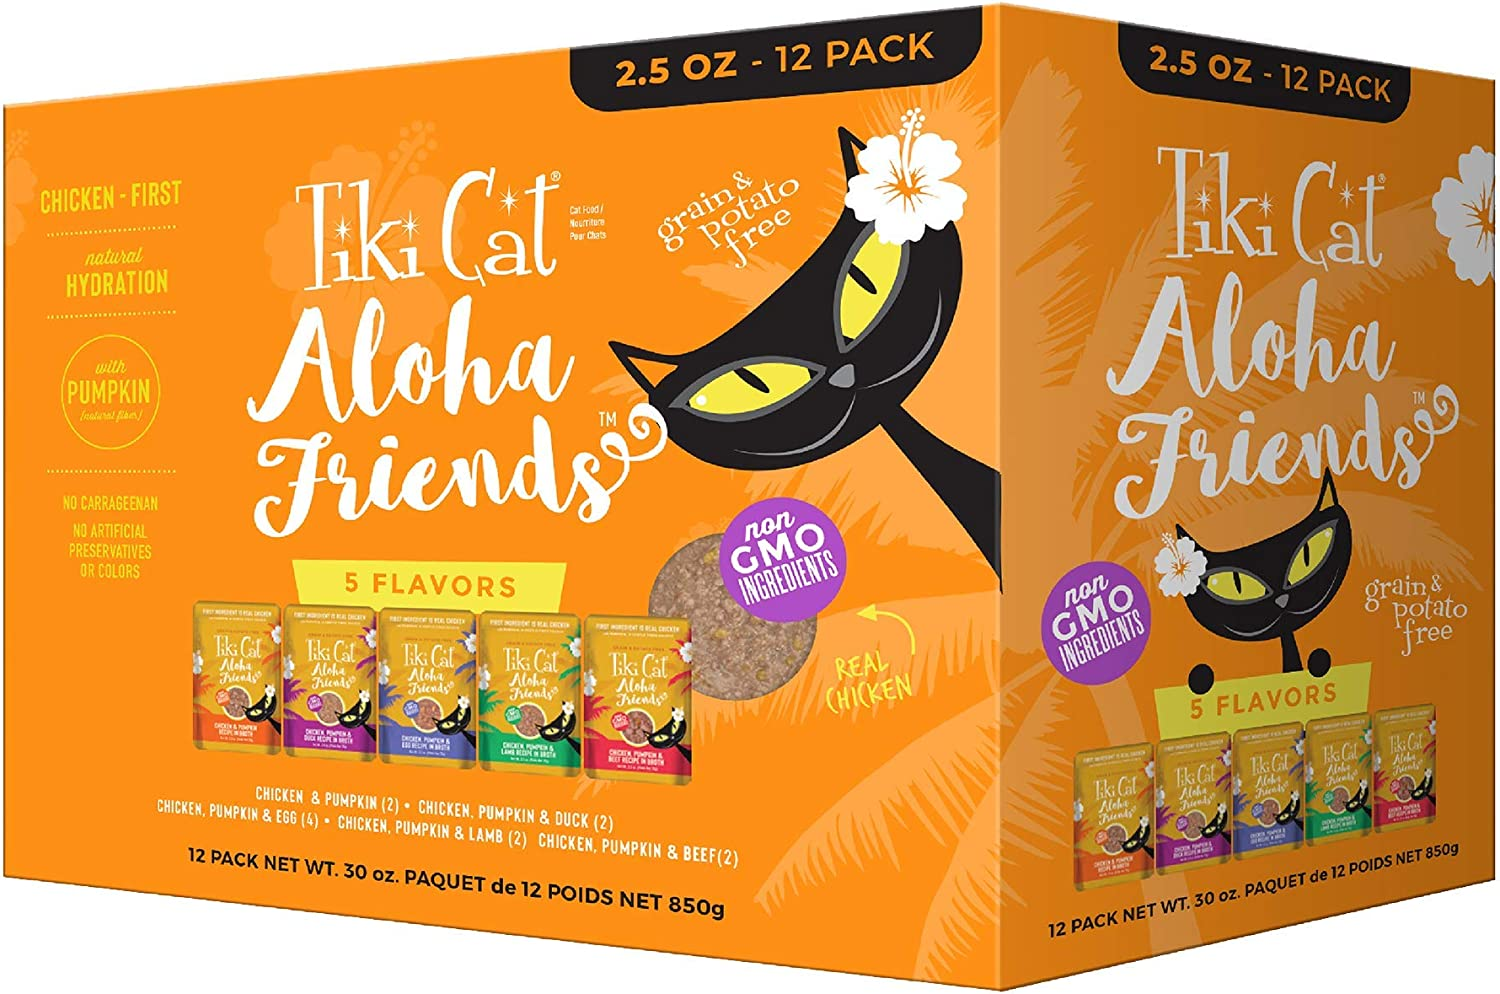 Tiki Pets Aloha Friends Grain Free Wet Food Shredded Chicken for Cat and Kittens Variety Pack, 12 Pouches 2.5oz